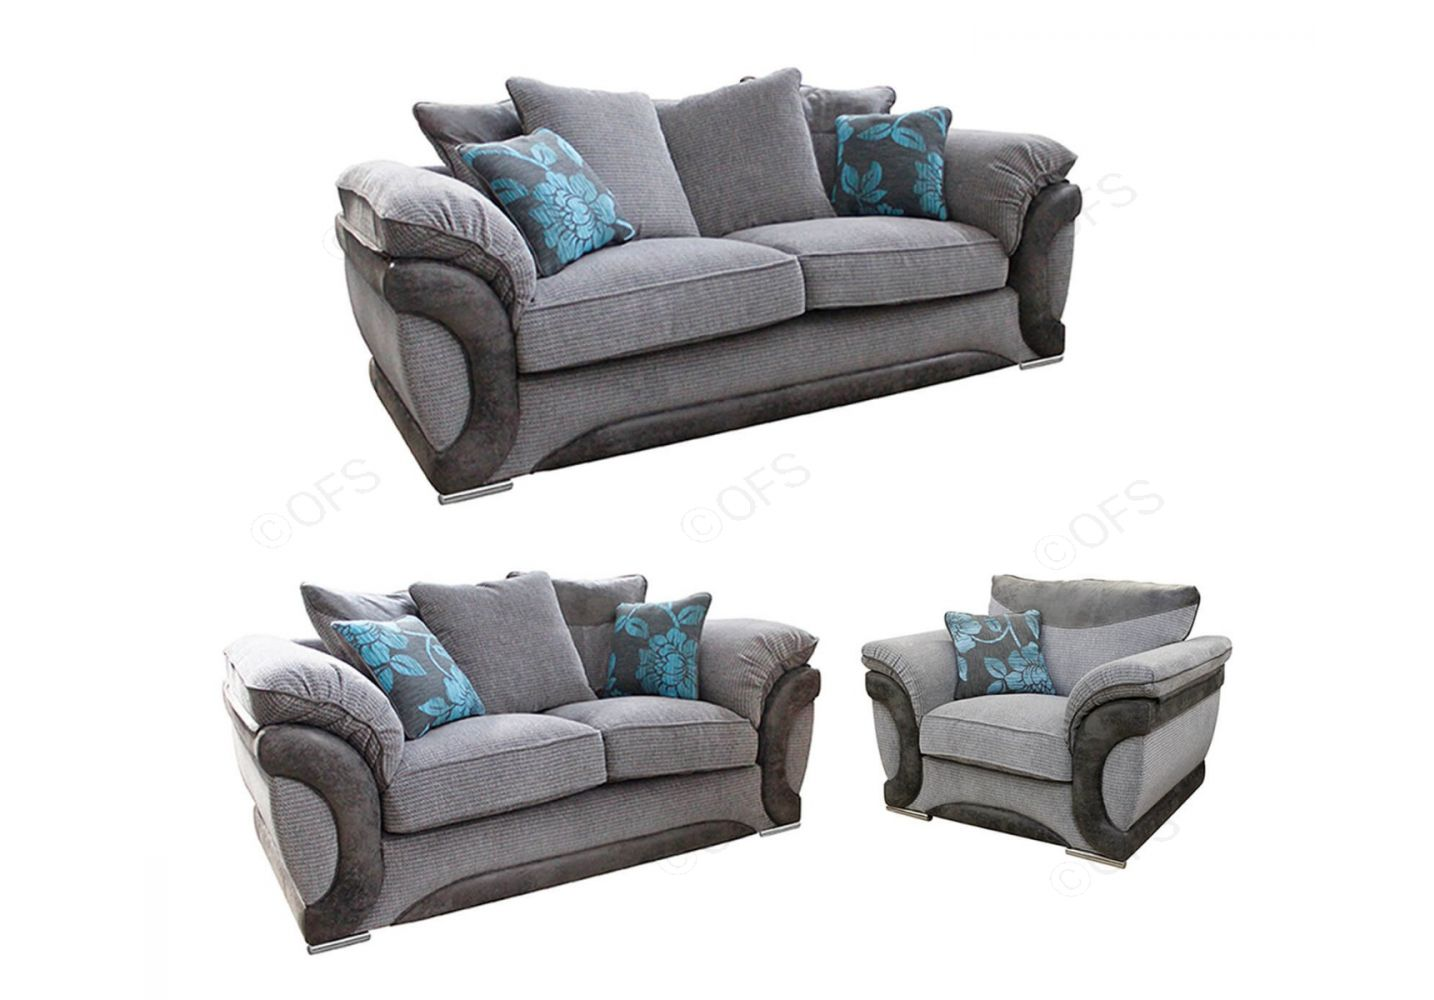 Buoyant Upholstery Omega Fabric 3 2 1 Sofa Set Onlinefurniturestore Co Uk